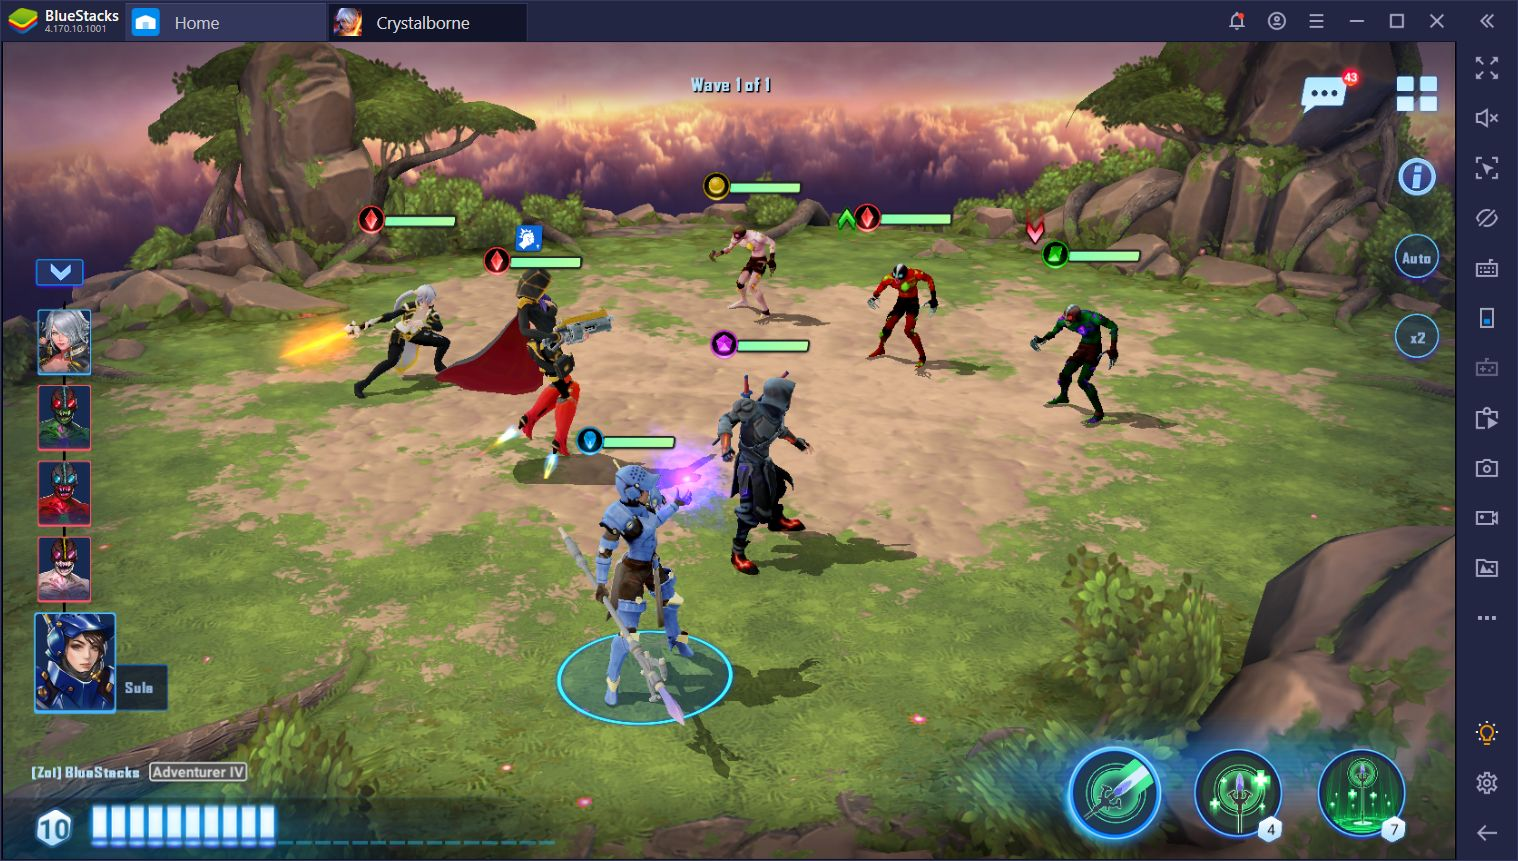 How to Win at Crystalborne: Heroes of Fate on PC with BlueStacks